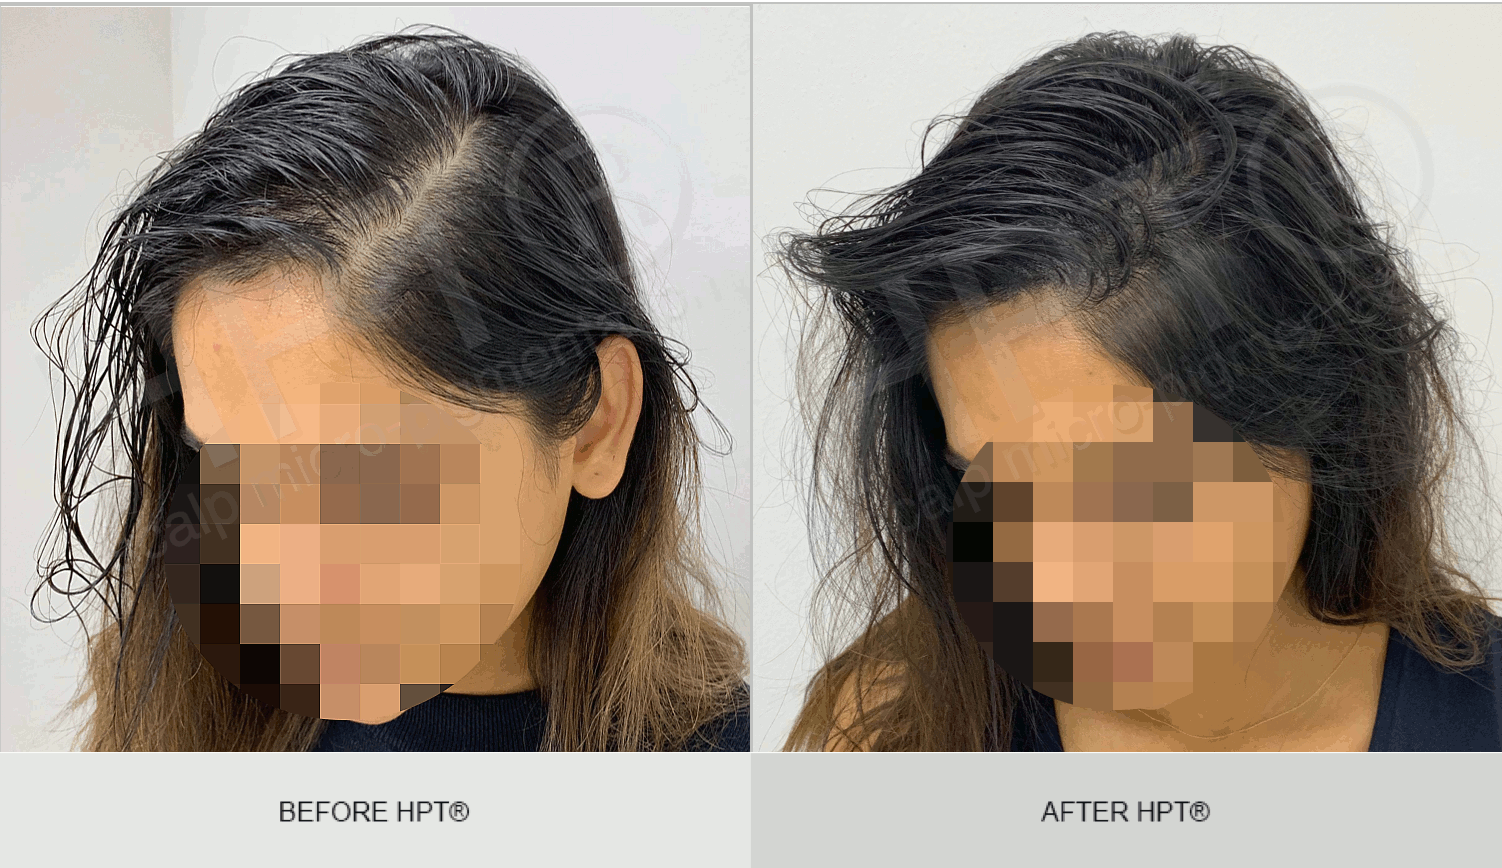 Female Scalp Camouflage - Micro Pigmentation